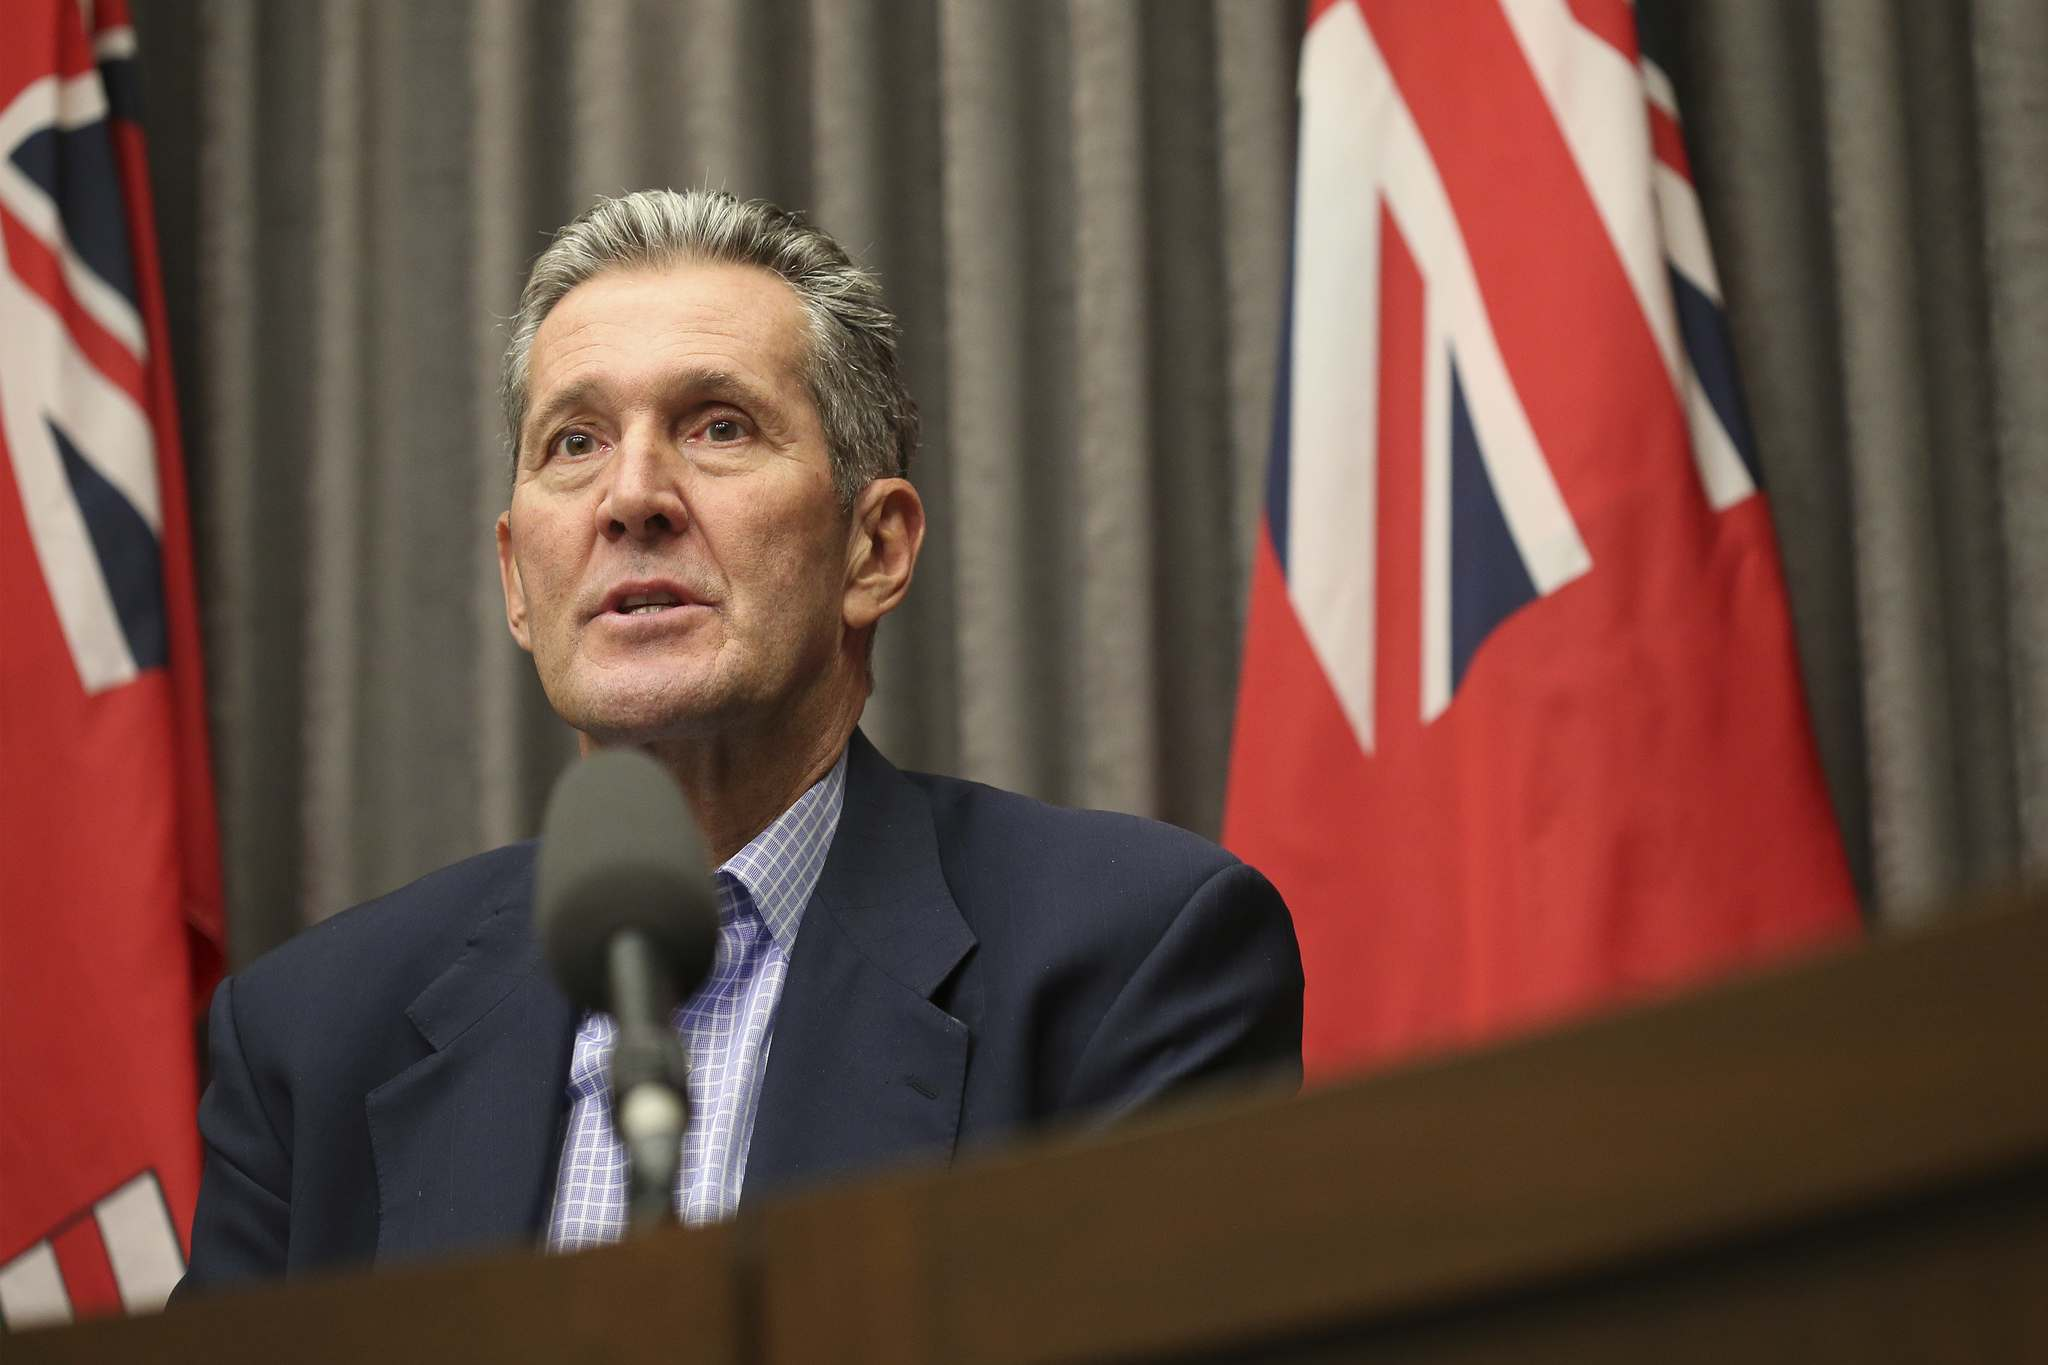 Premier Brian Pallister told a news conference Thursday the province is considering allowing more facilities and businesses to reopen because cases have remained stable since some lockdown restrictions were eased Jan. 23.